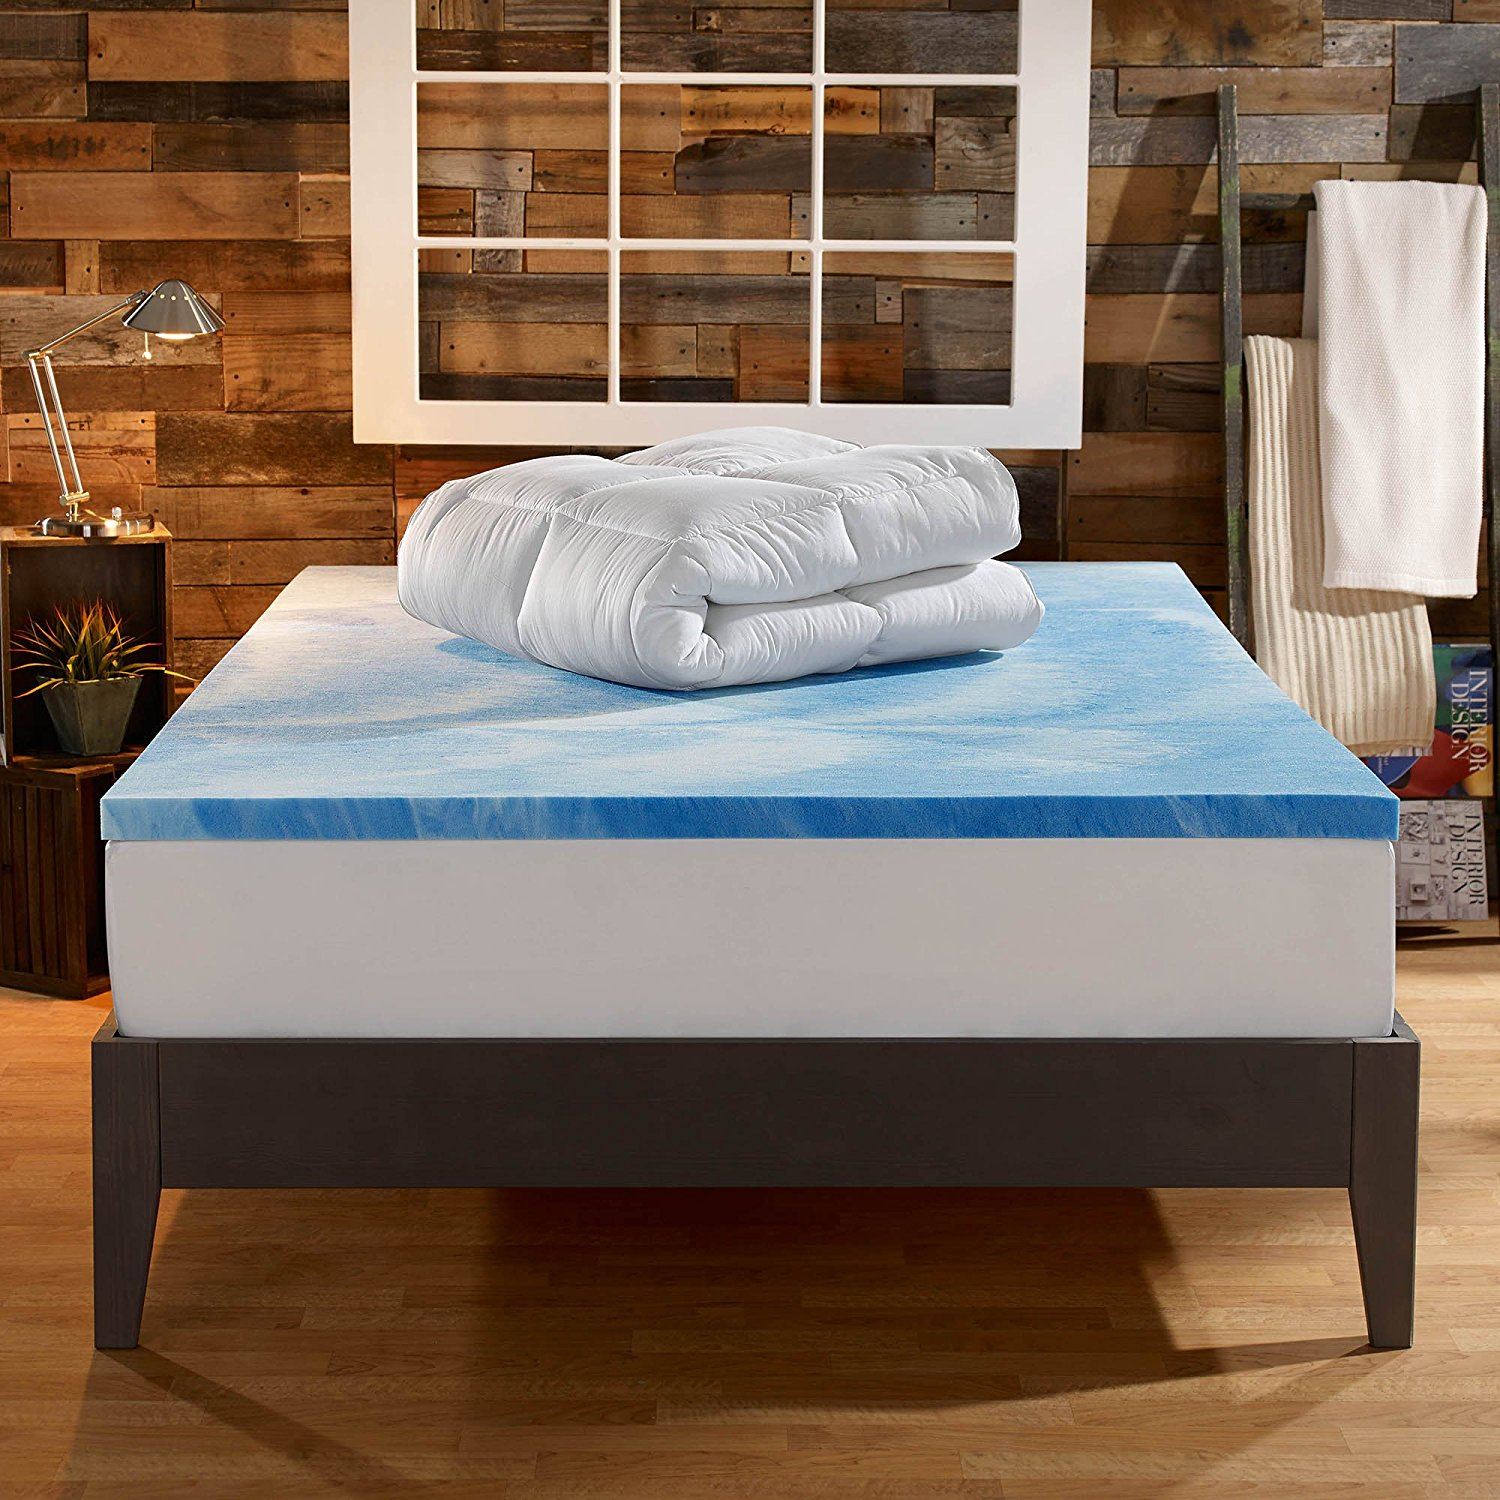 6 Best Memory Foam Mattress Toppers 2019 Mfm Toppers Reviews